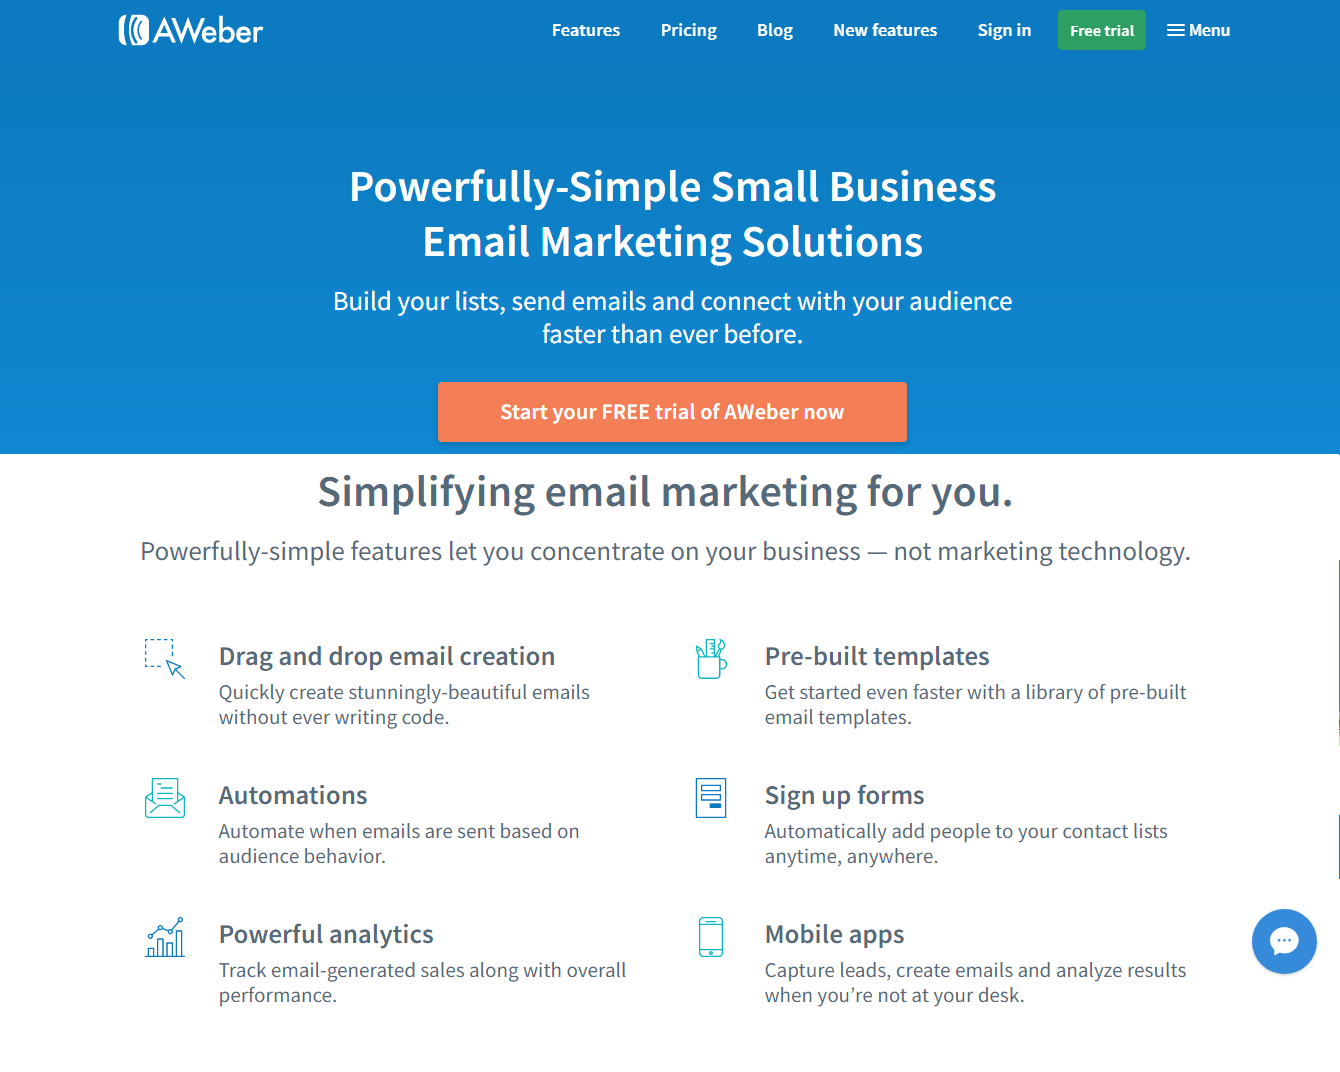 emailing services,best emailer,emailing service for marketing,email marketing service,email service best,emai marketing,marketing emails software,